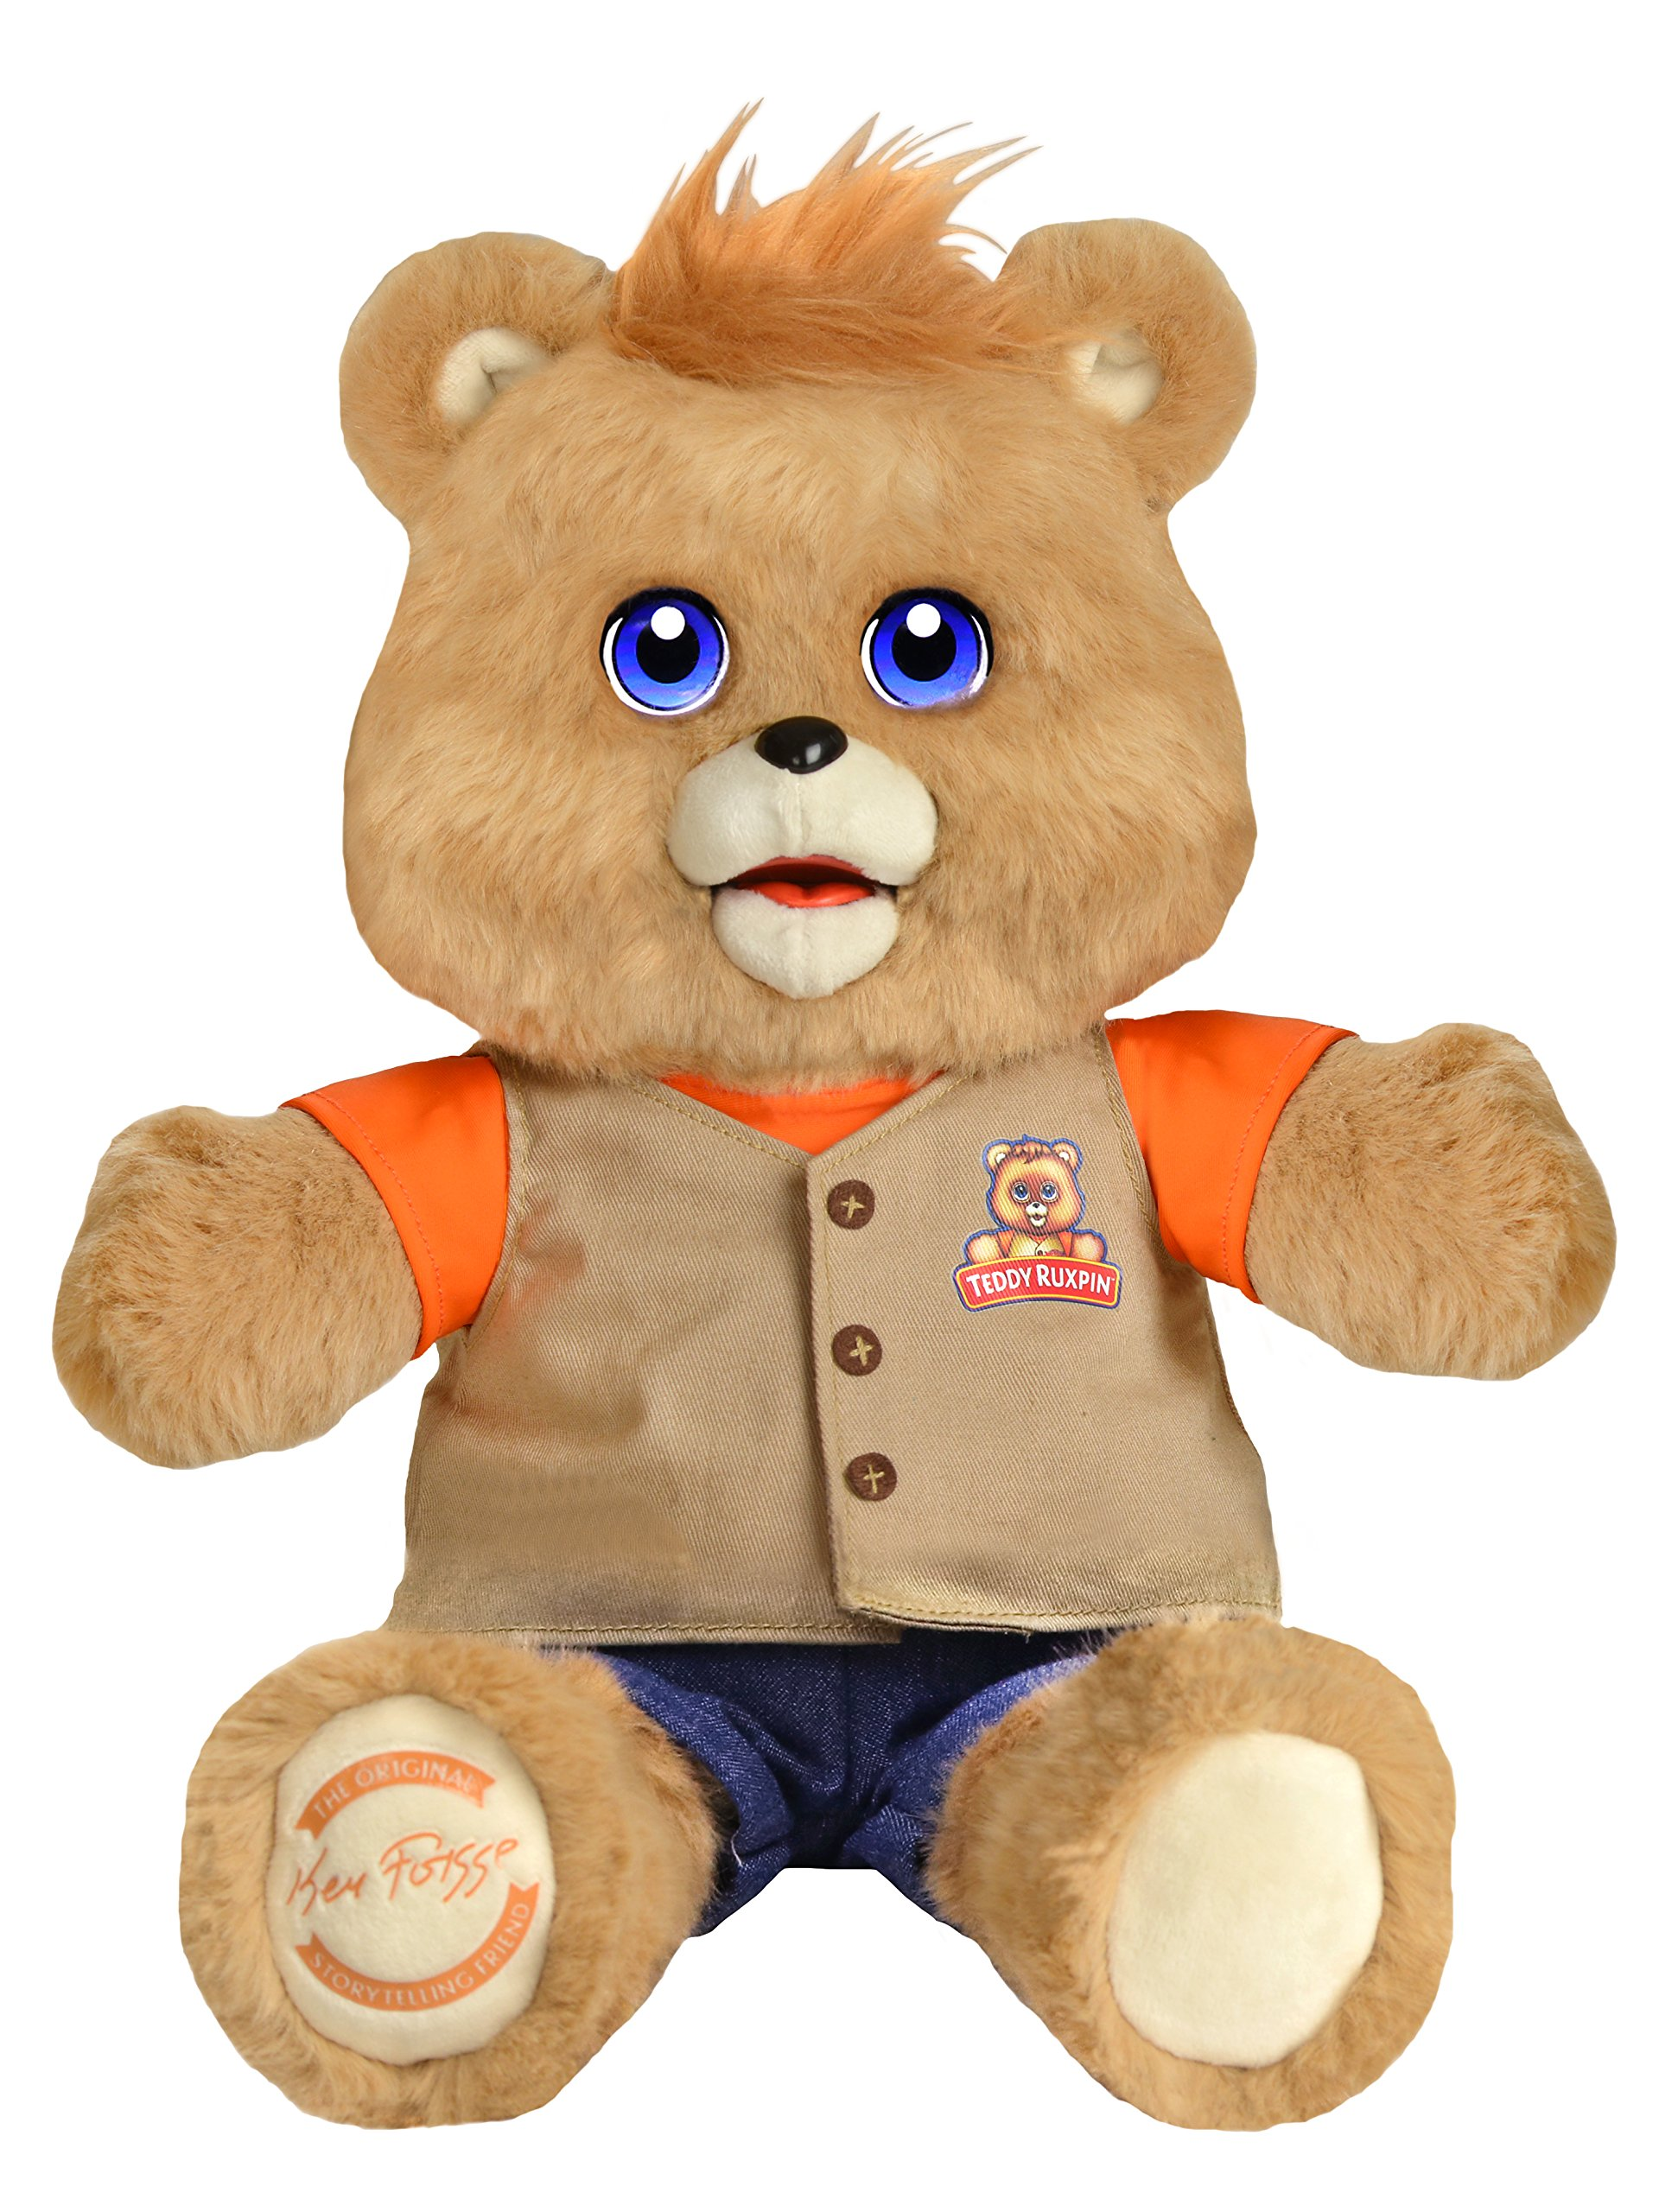 Teddy Ruxpin Magical Bear